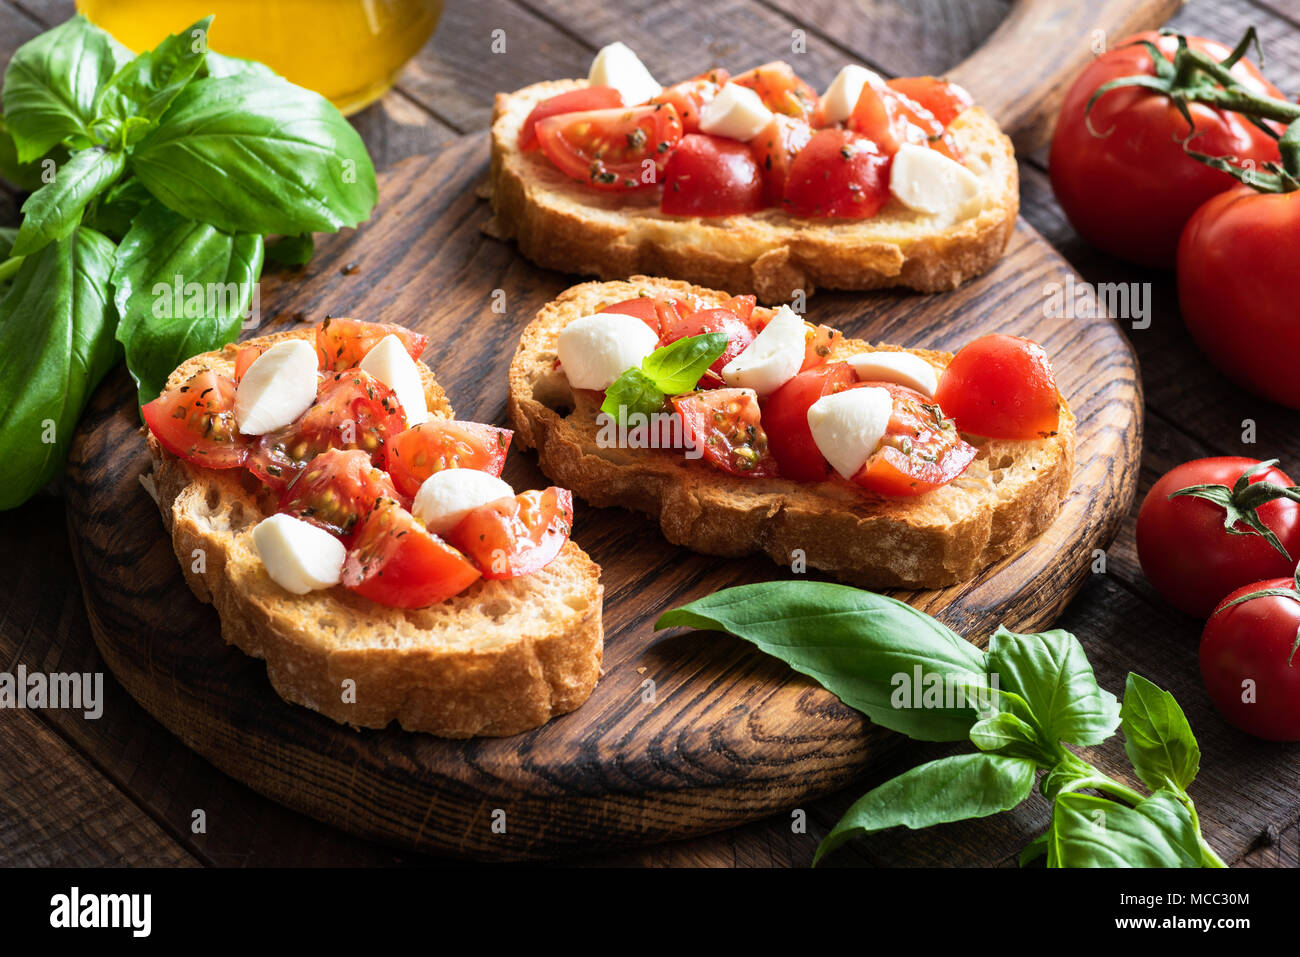 Bruschetta with tomato, basil and mozzarella cheese on wooden board. Traditional italian appetizer or snack, antipasto - Stock Image